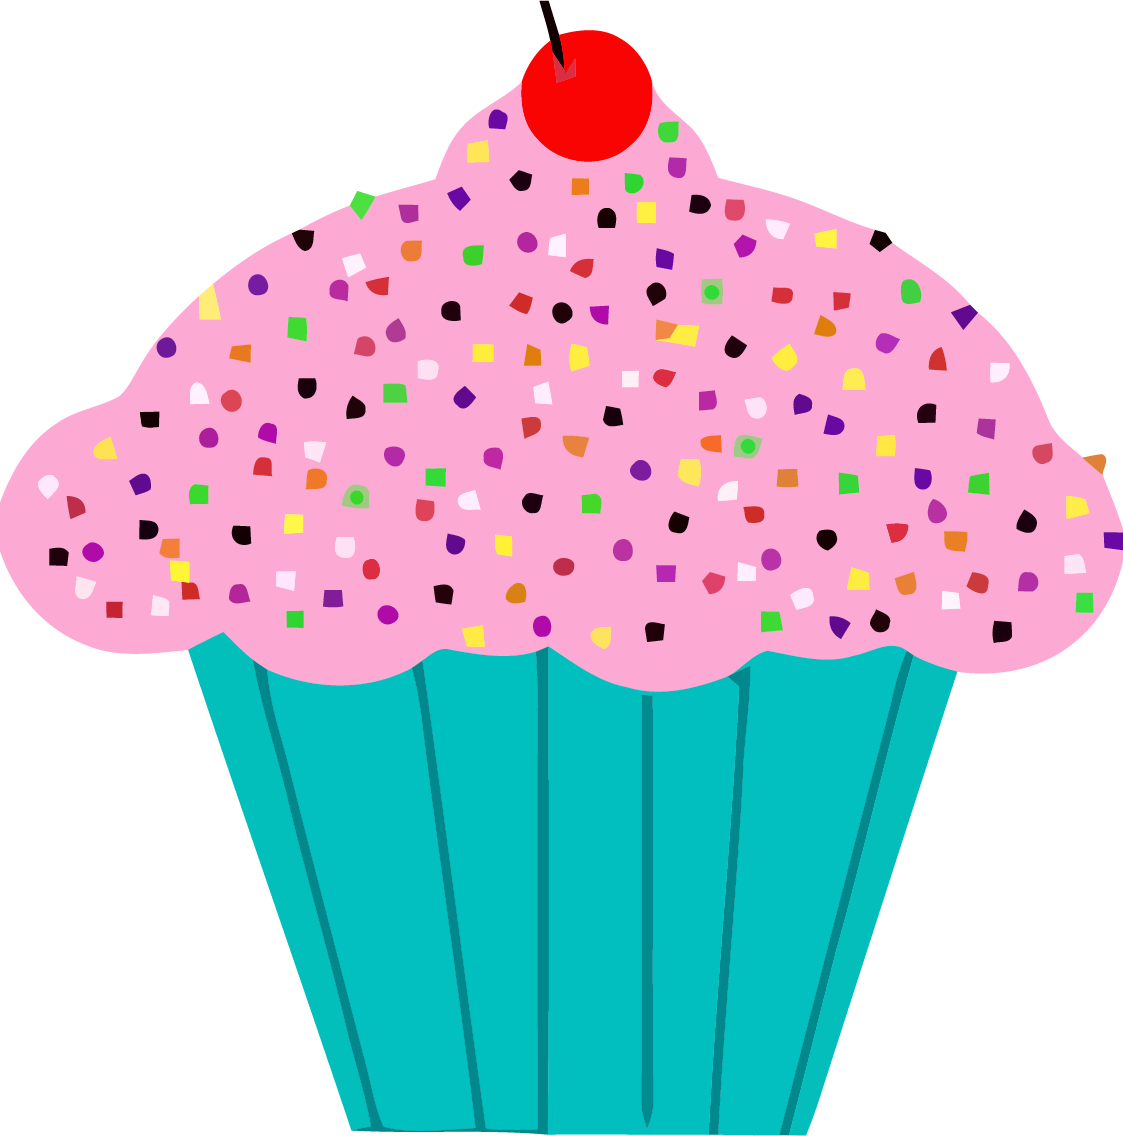 Cupcake graphics clipart jpg freeuse library Cupcake Graphics Clipart - Making-The-Web.com jpg freeuse library